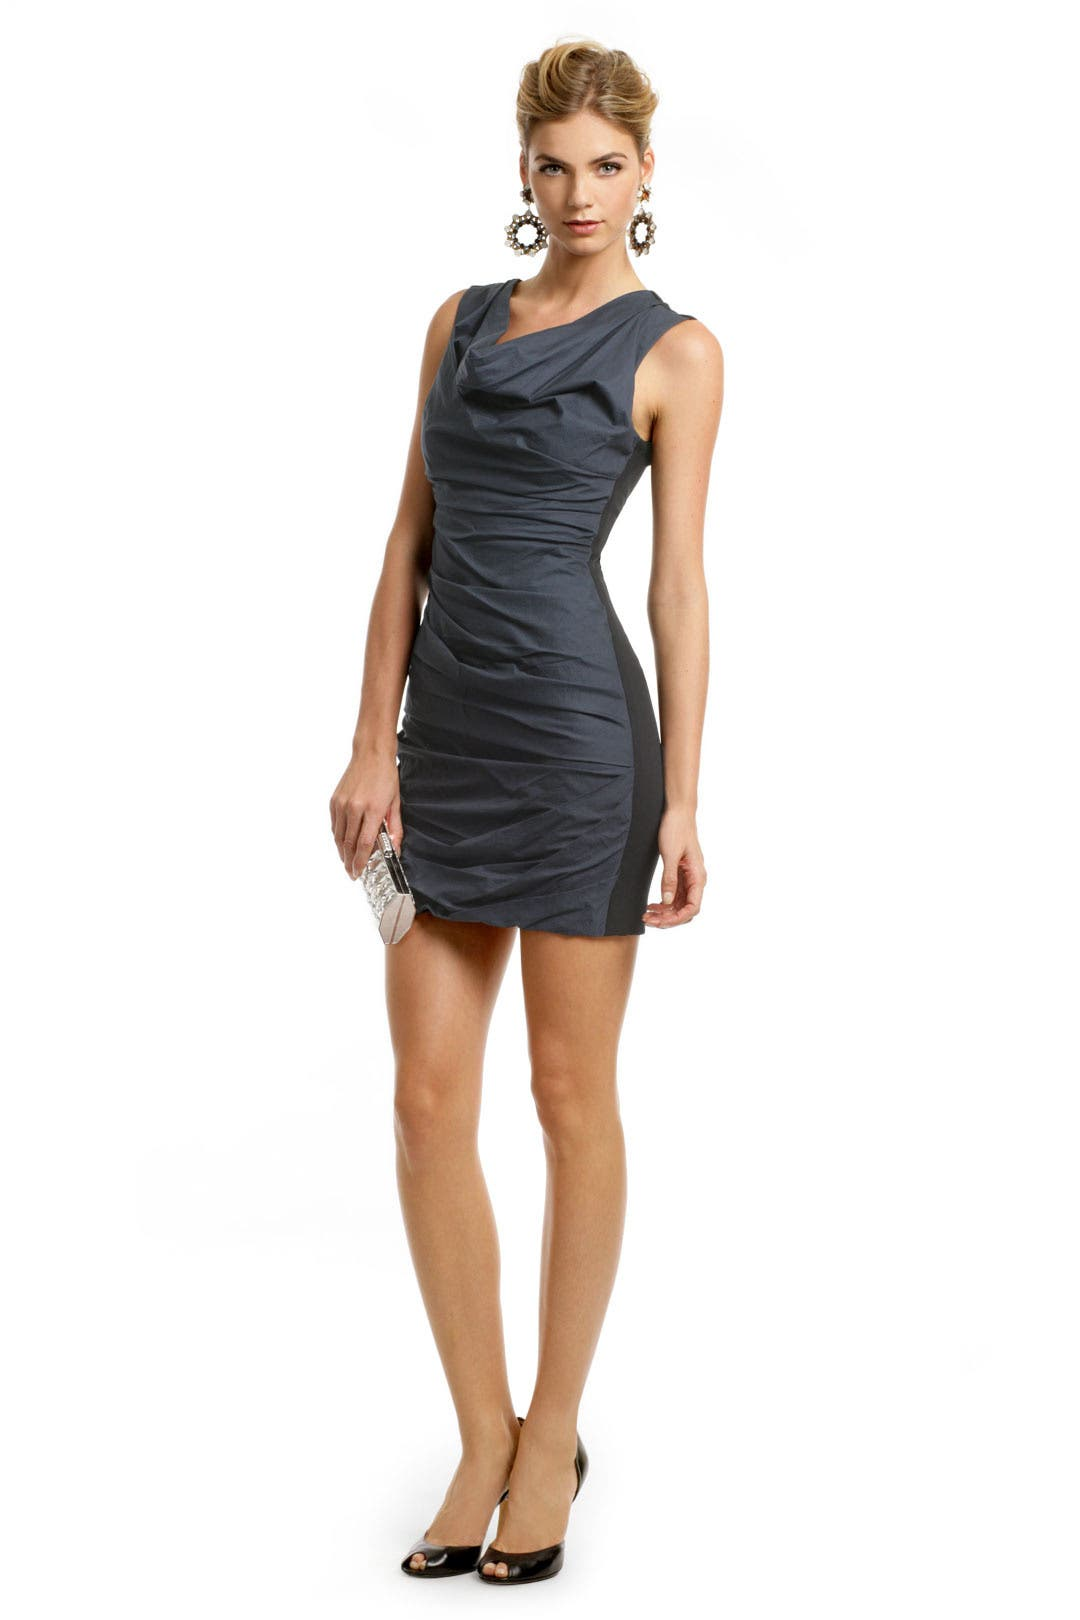 Bicolor Power Sheath by Vera Wang